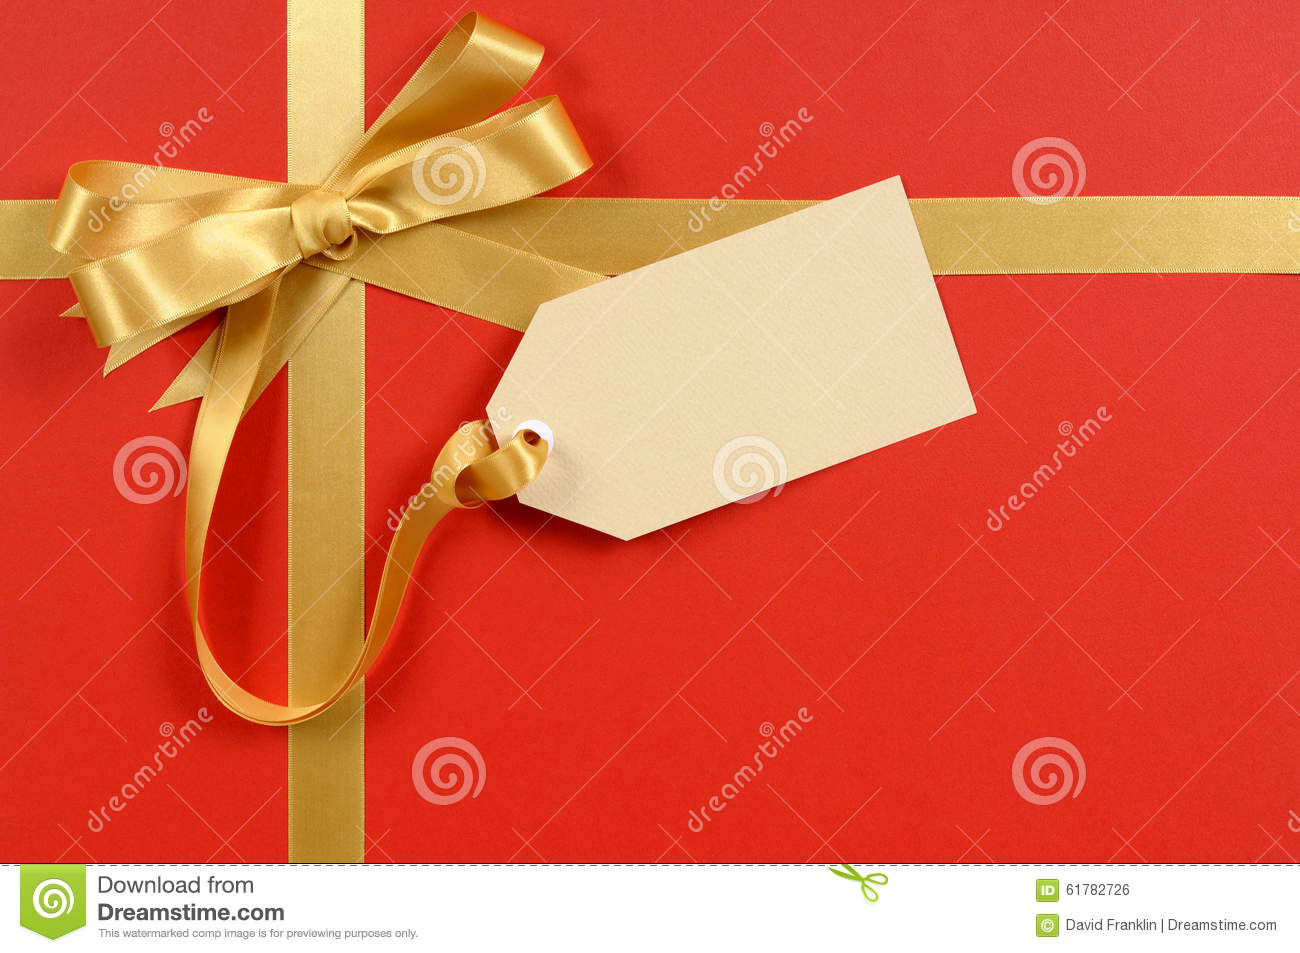 gift tag or label red background gold ribbon bow copy space